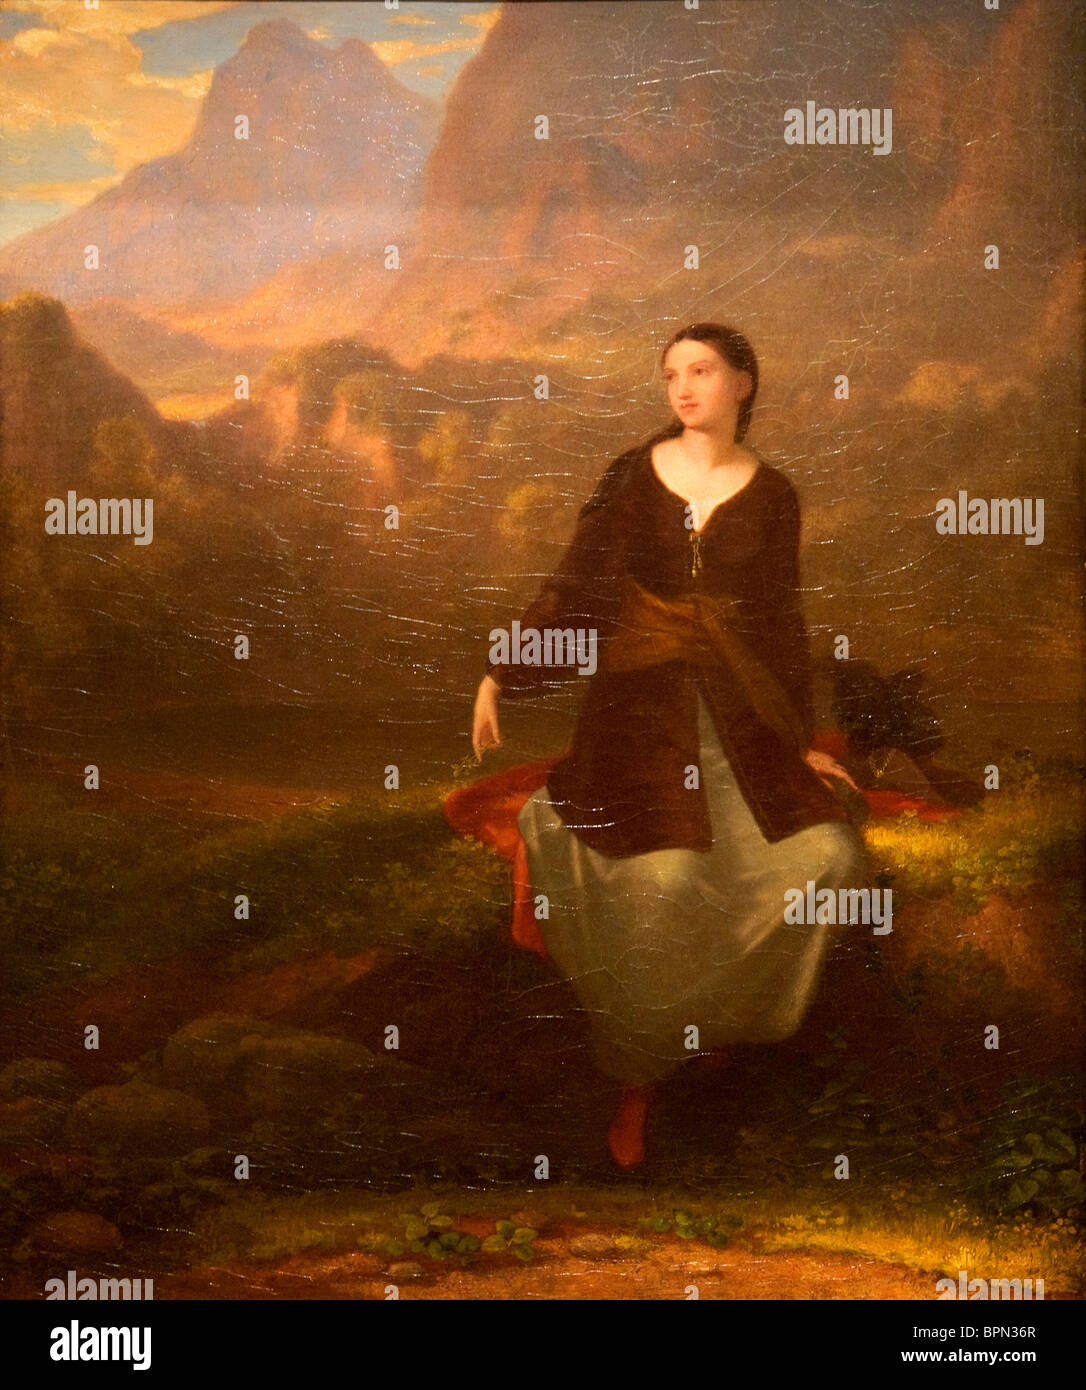 The Spanish Girl in Reverie, 1831, by Washington Allston - Stock Image